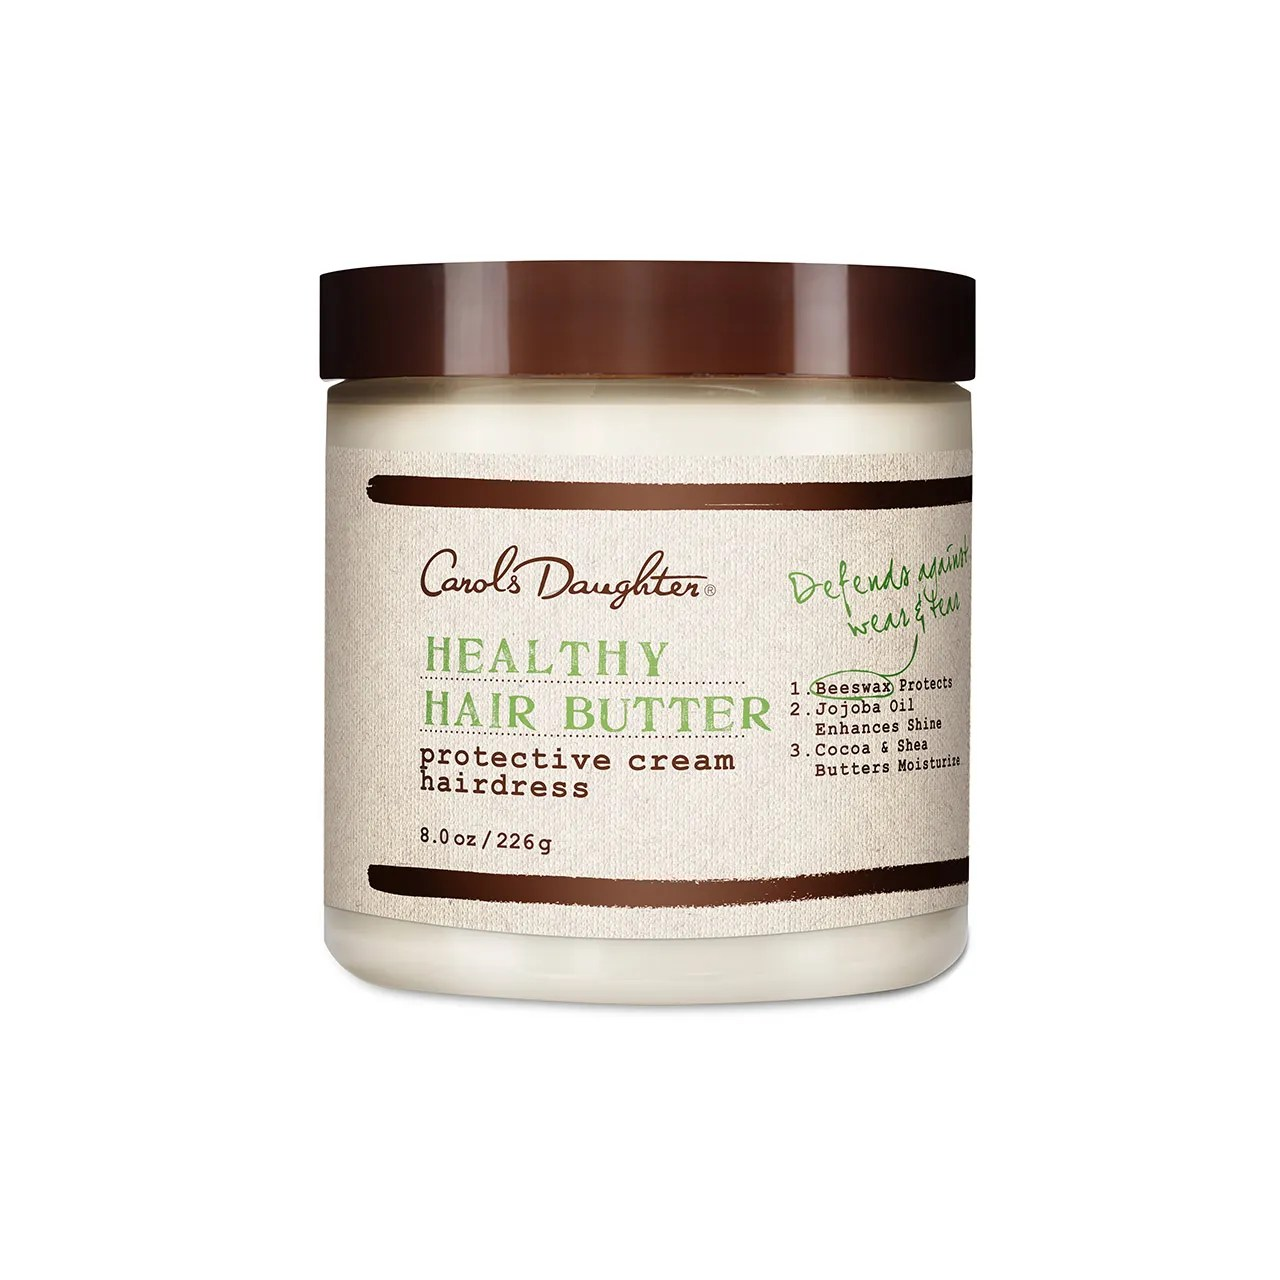 Carols Daughter Healthy Hair Butter Review Allure